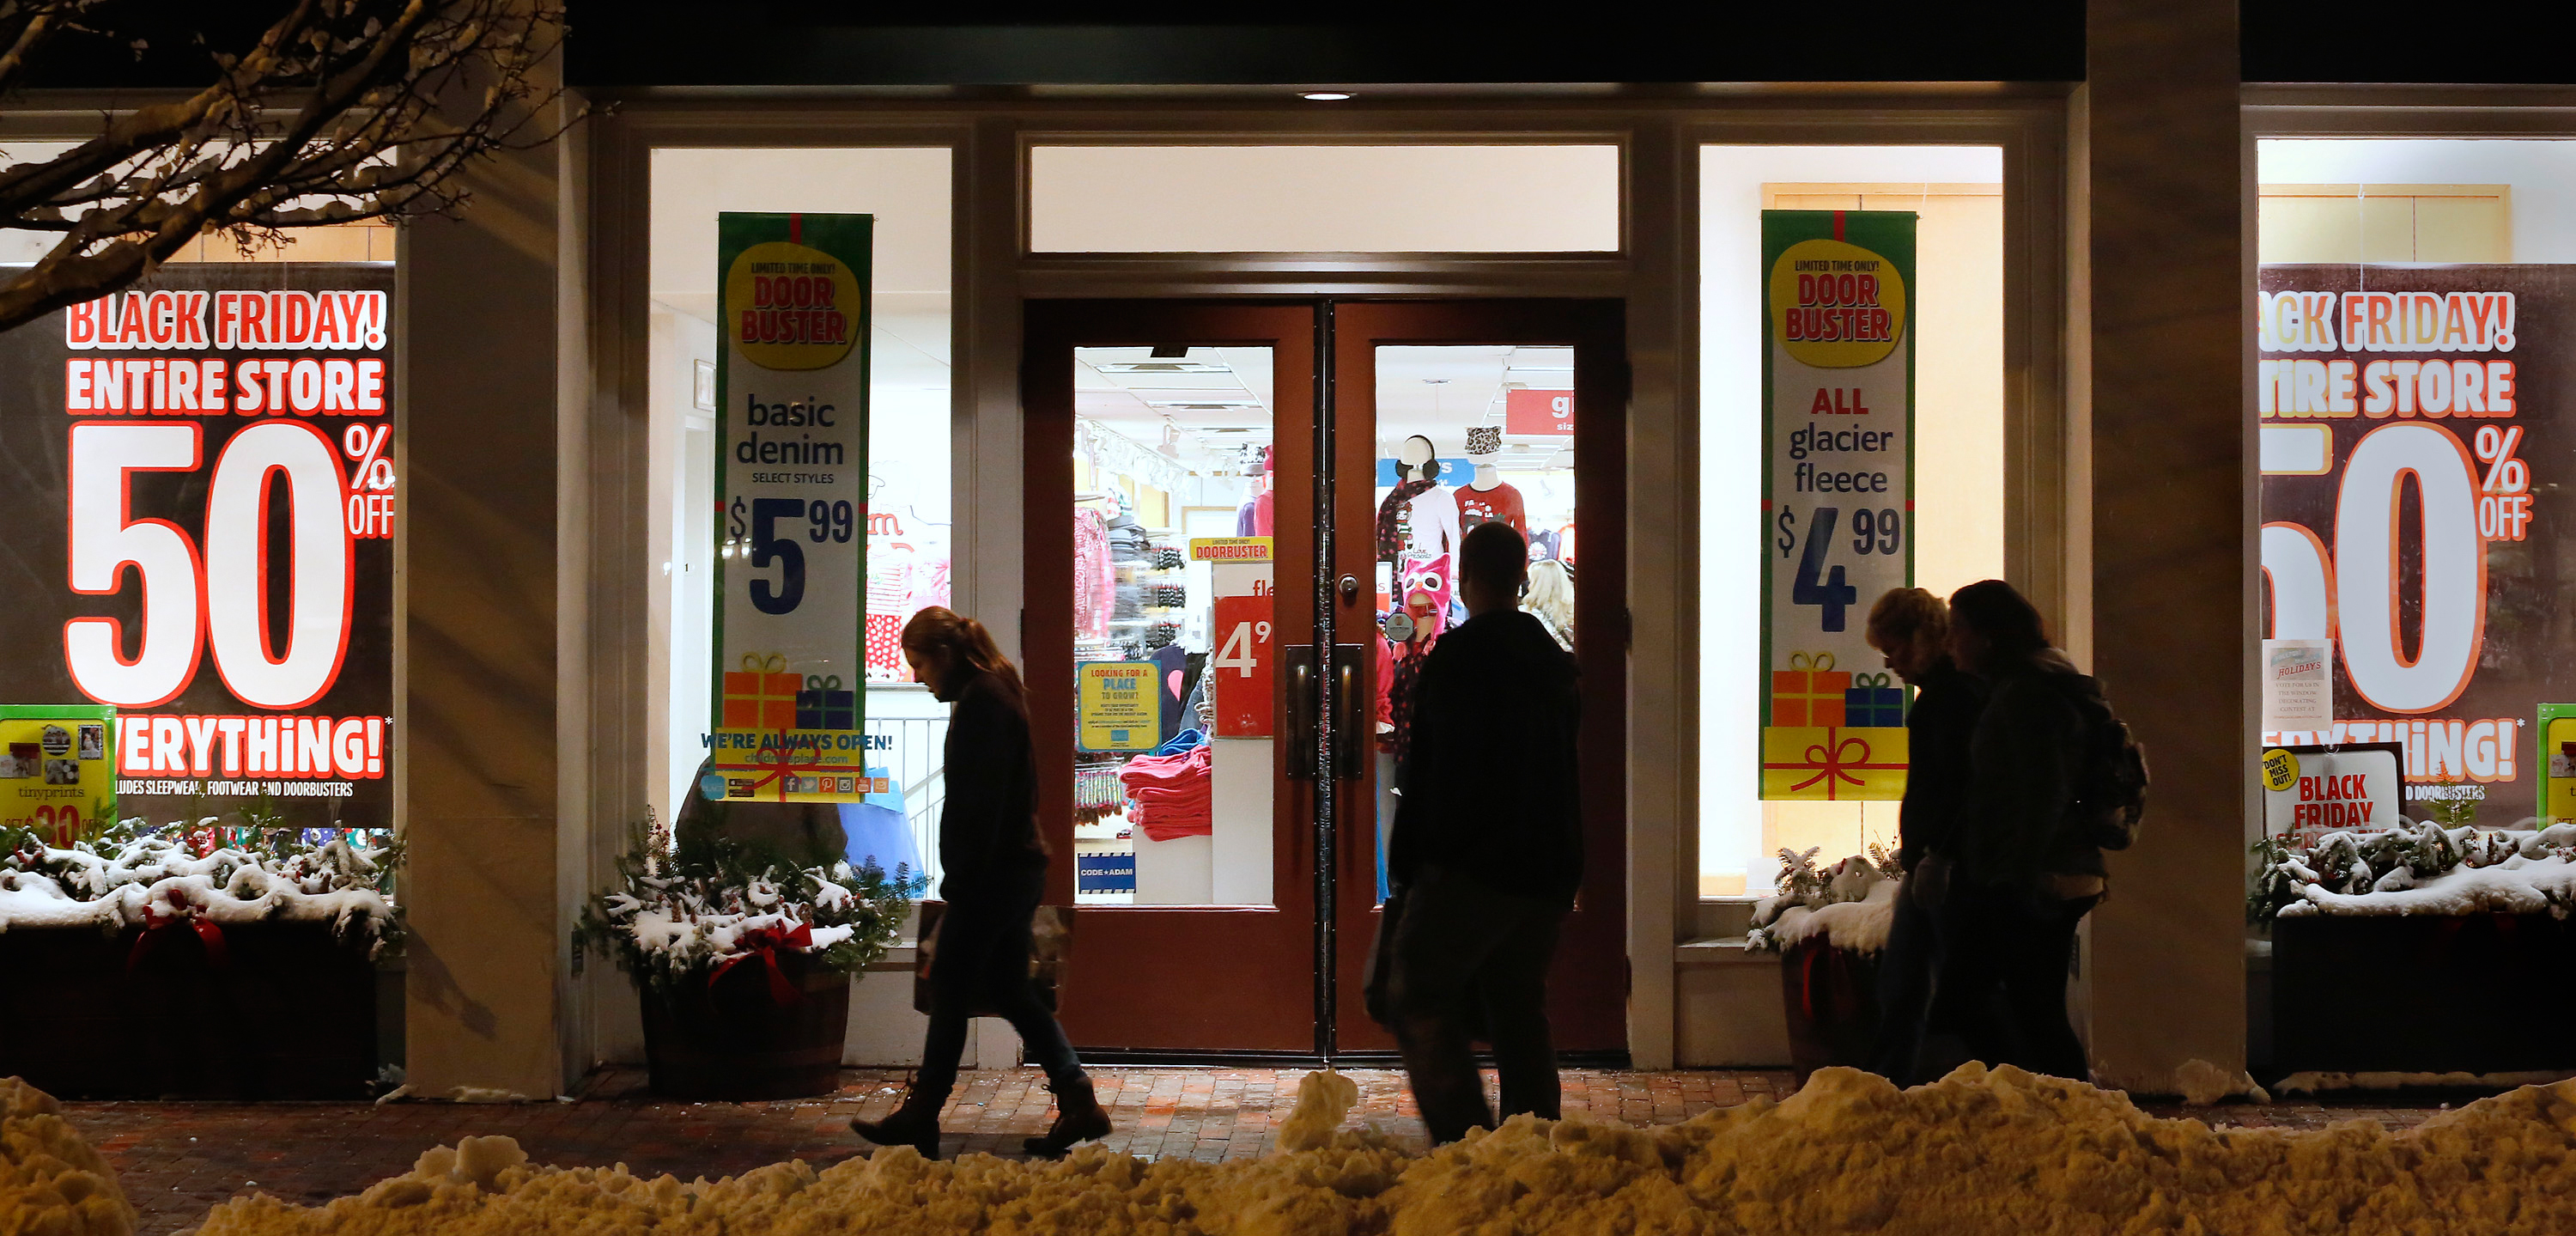 Shoppers pass by stores windows advertising Black Friday deals after the stores opened their doors at midnight.